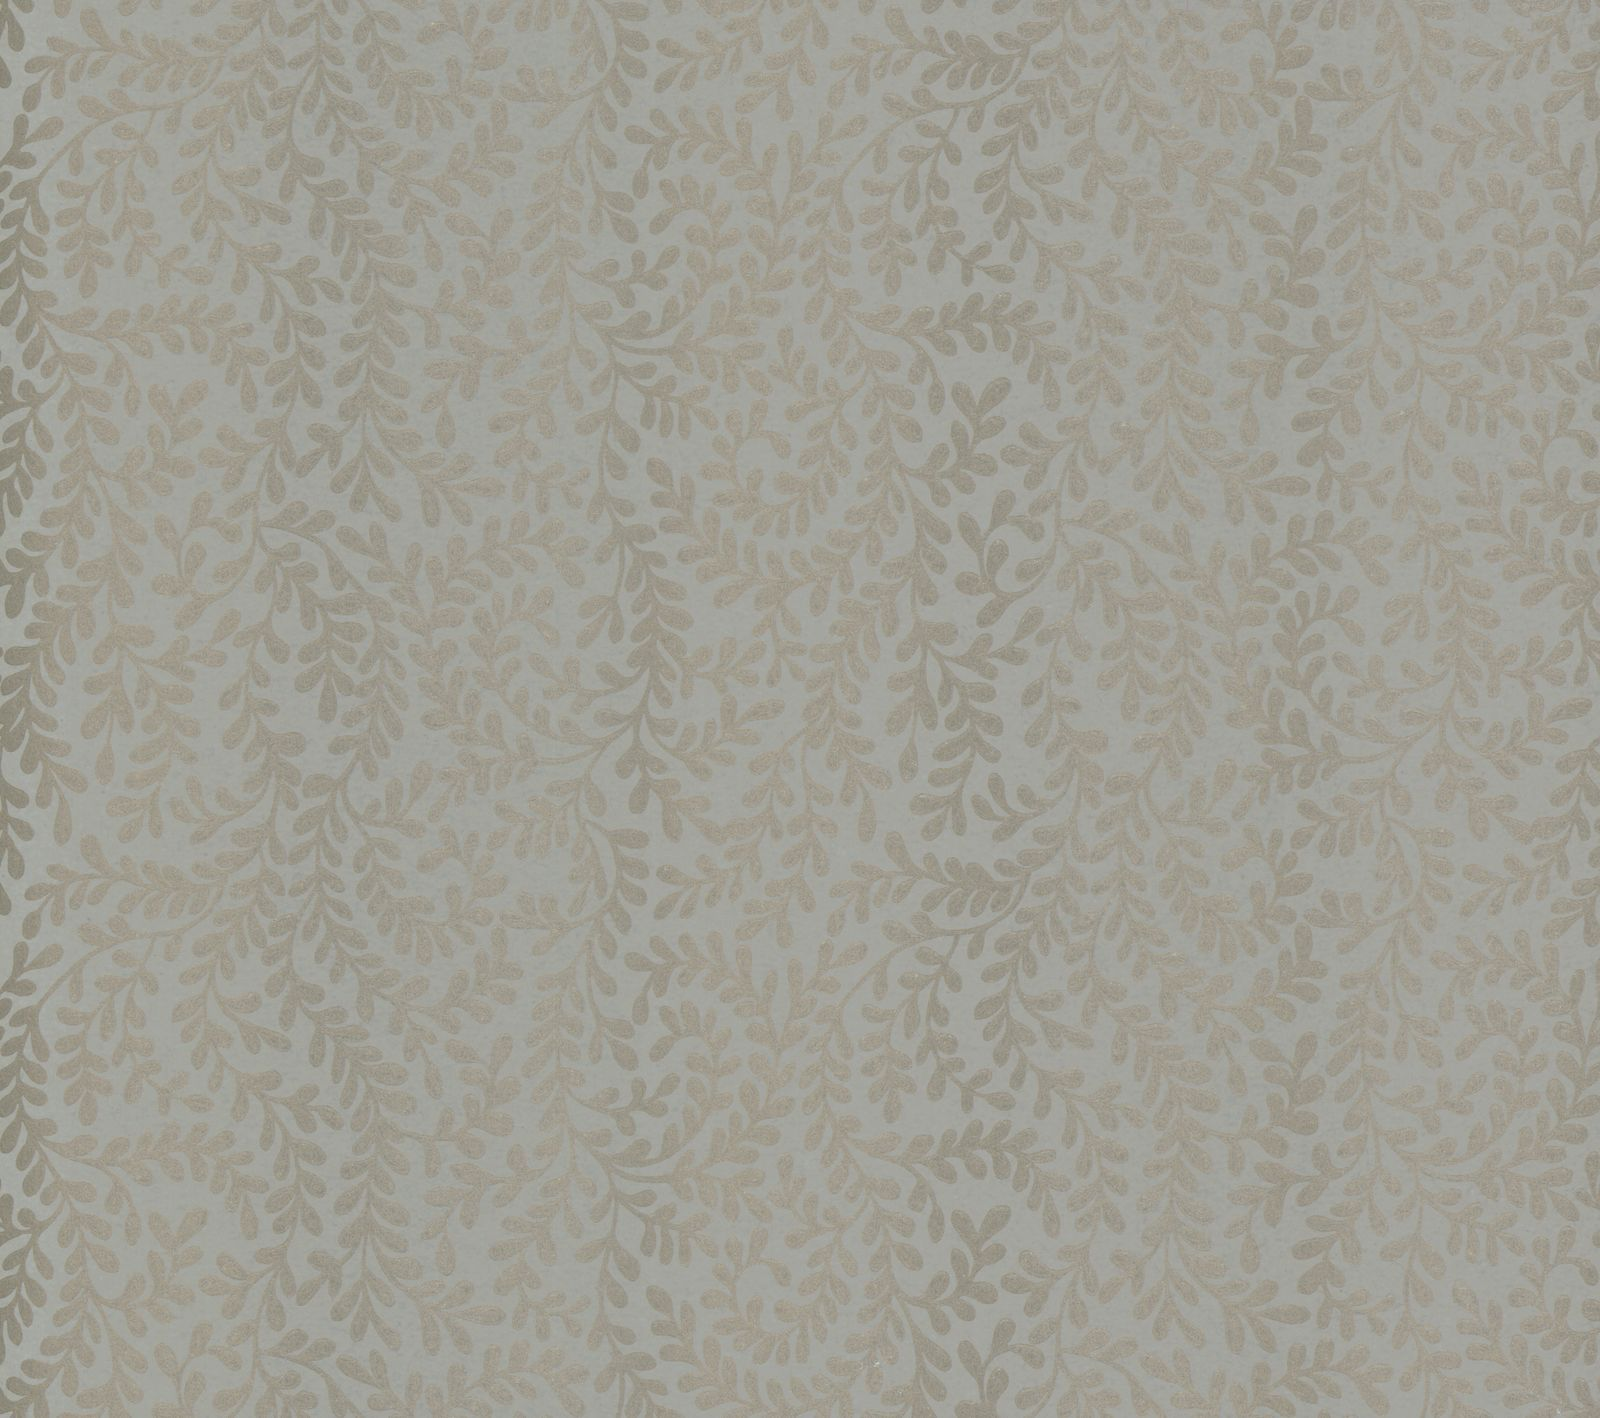 Tapetti 1838 Wallcoverings Audley siniharmaa 0,52x10,05 m